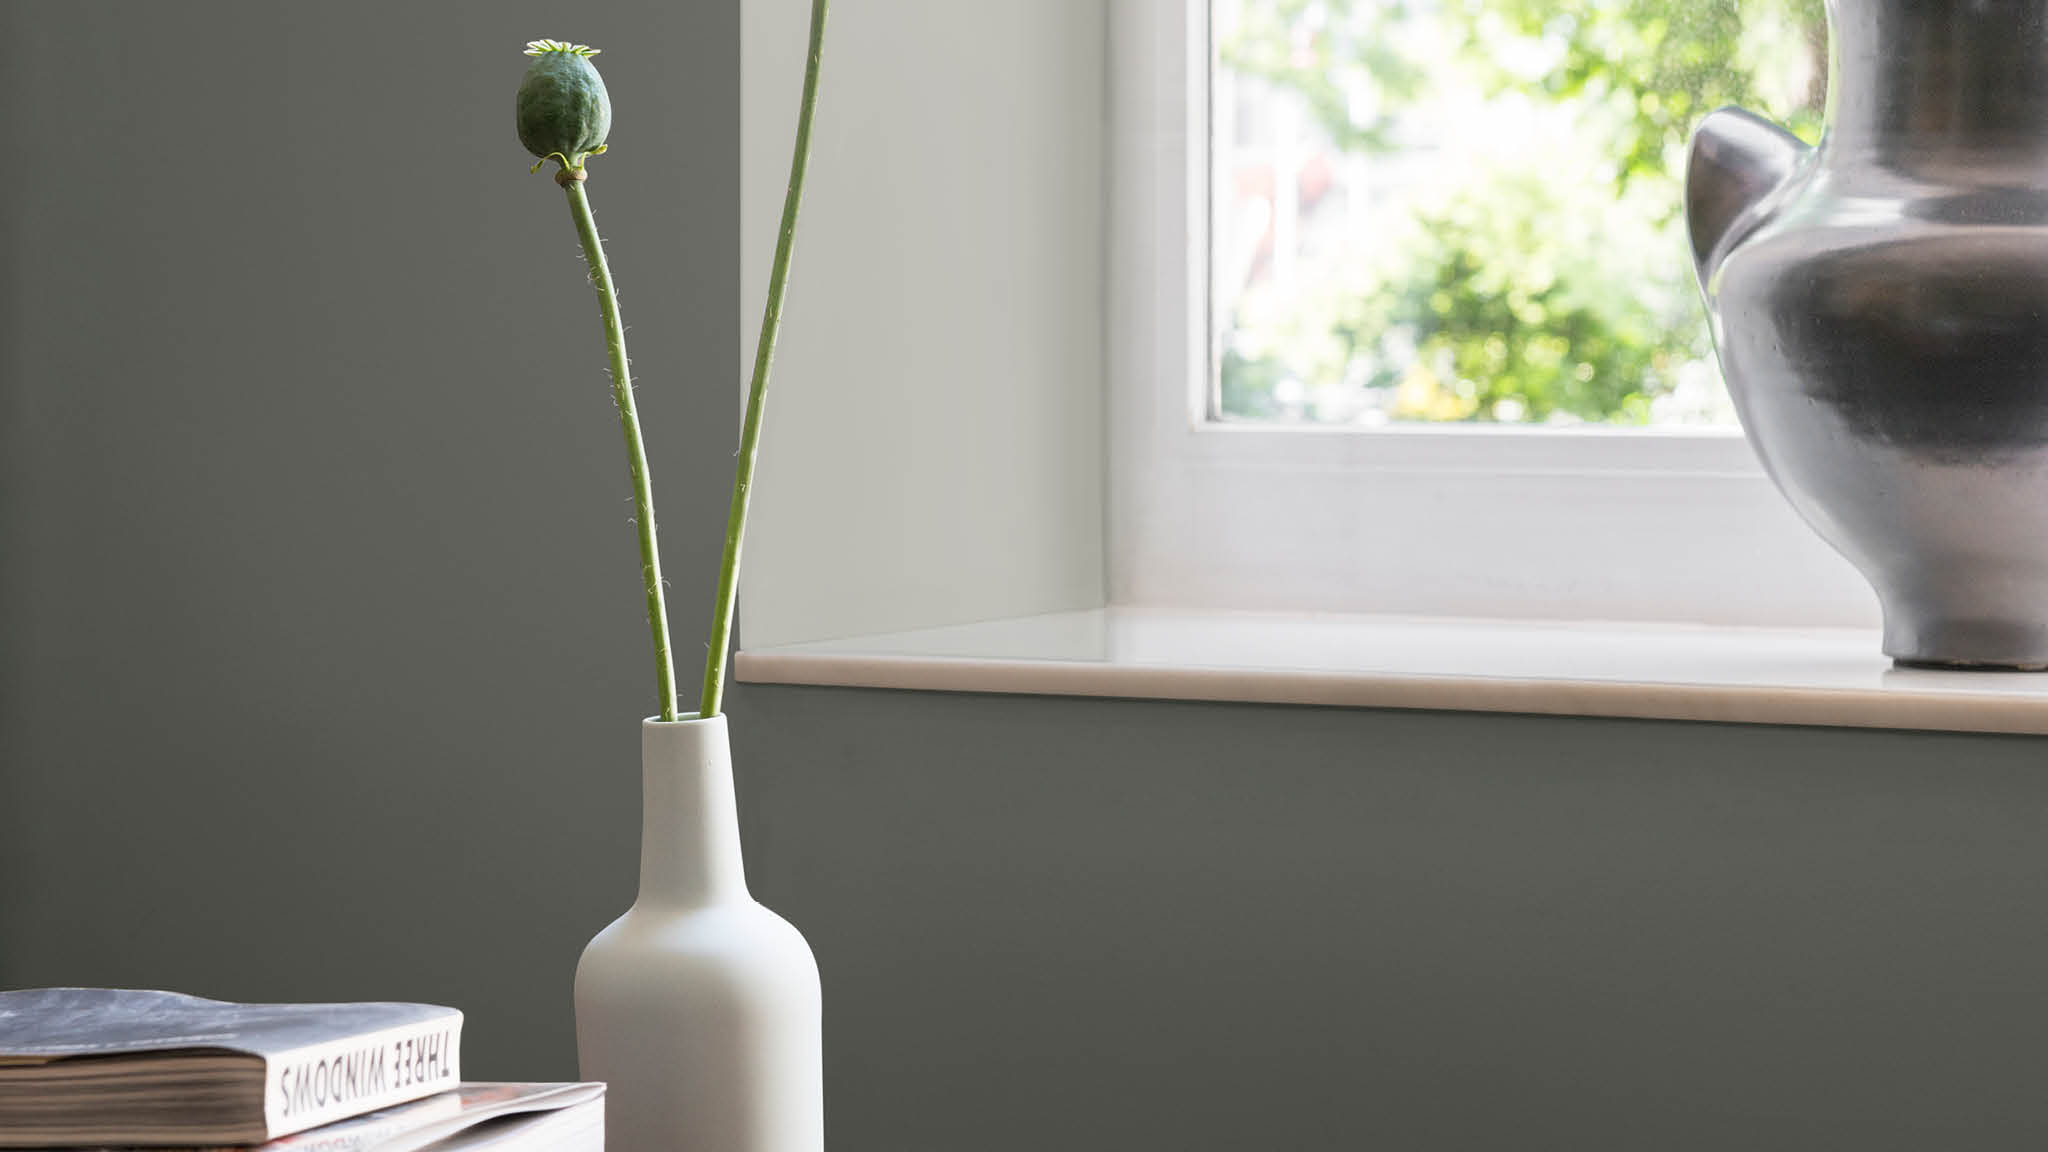 Matt and flat matt emulsion is smooth and velvety making it suitable for most interior walls.